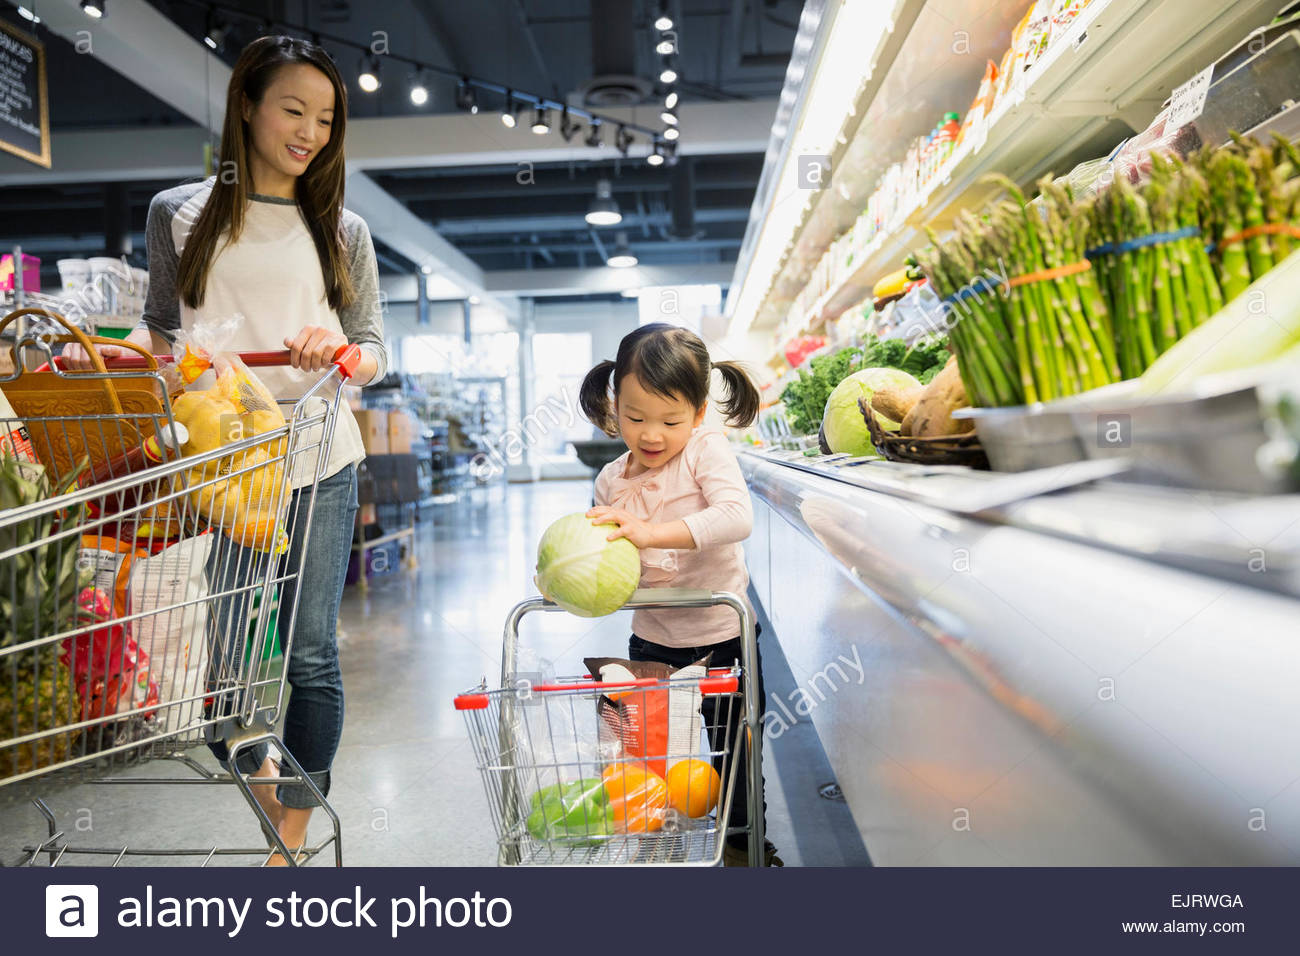 Mother watching daughter place melon in shopping cart - Stock Image